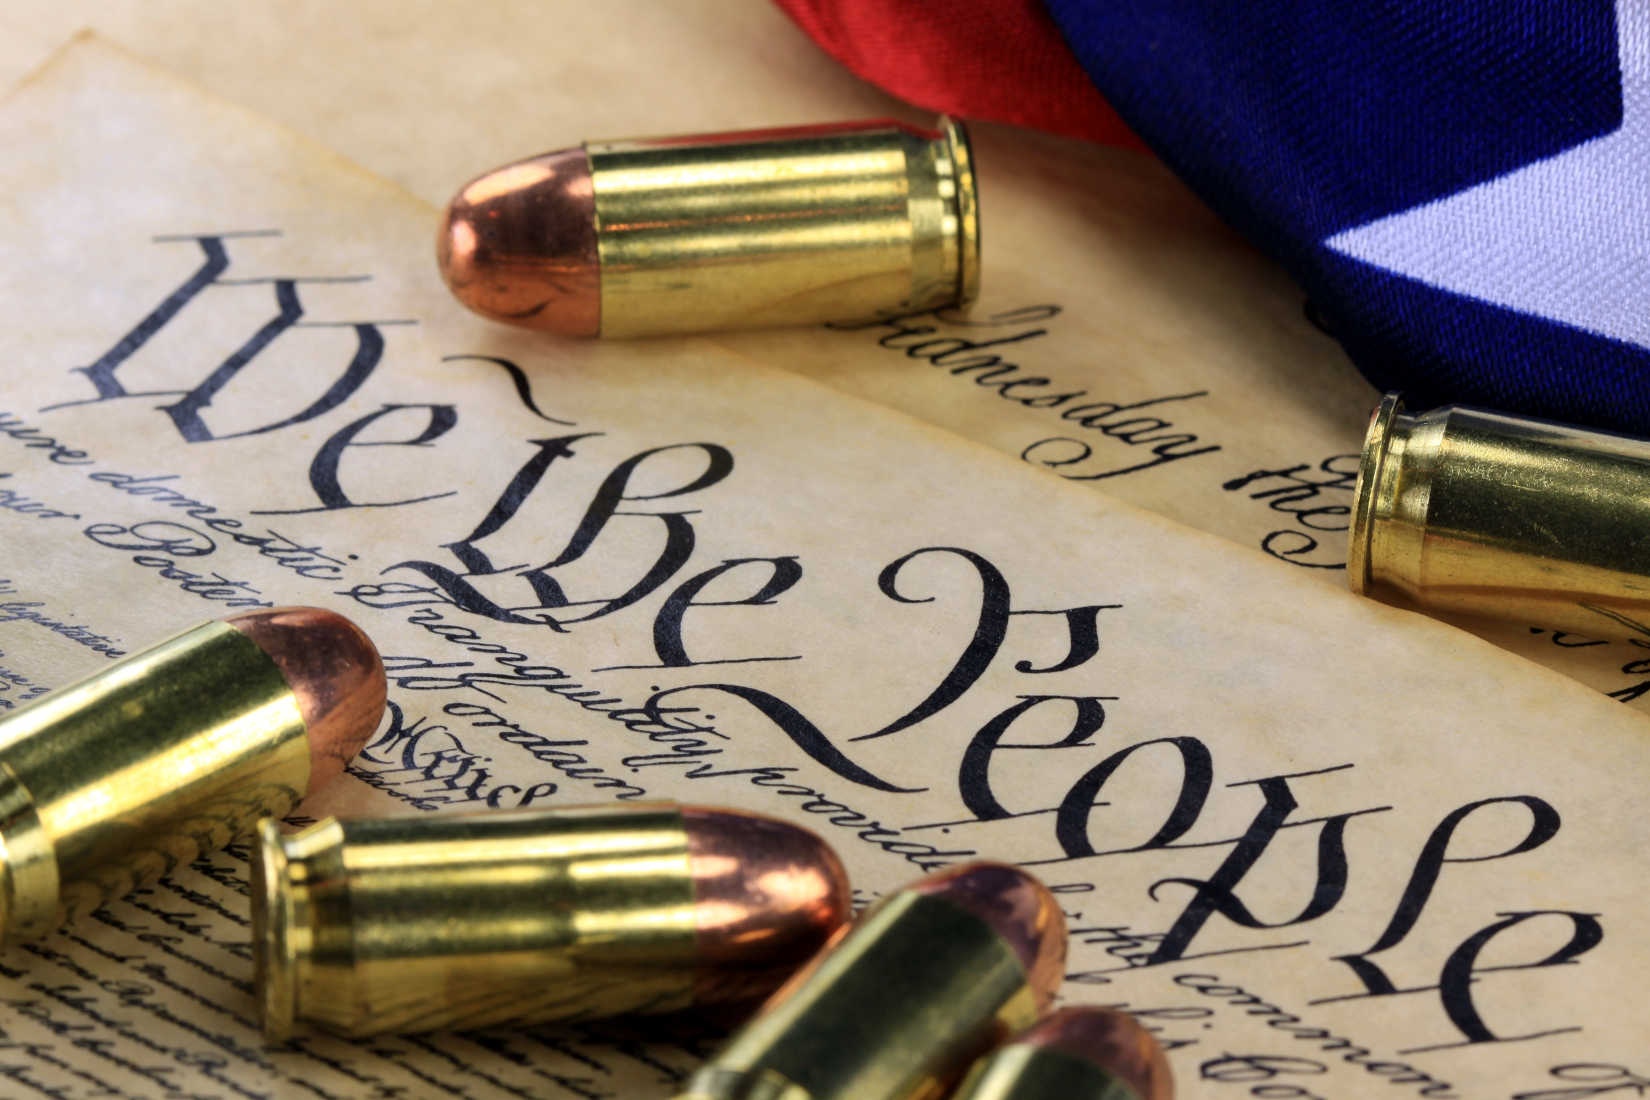 Gun Rights Group Files Suit to Overturn Colorado's Red Flag Law